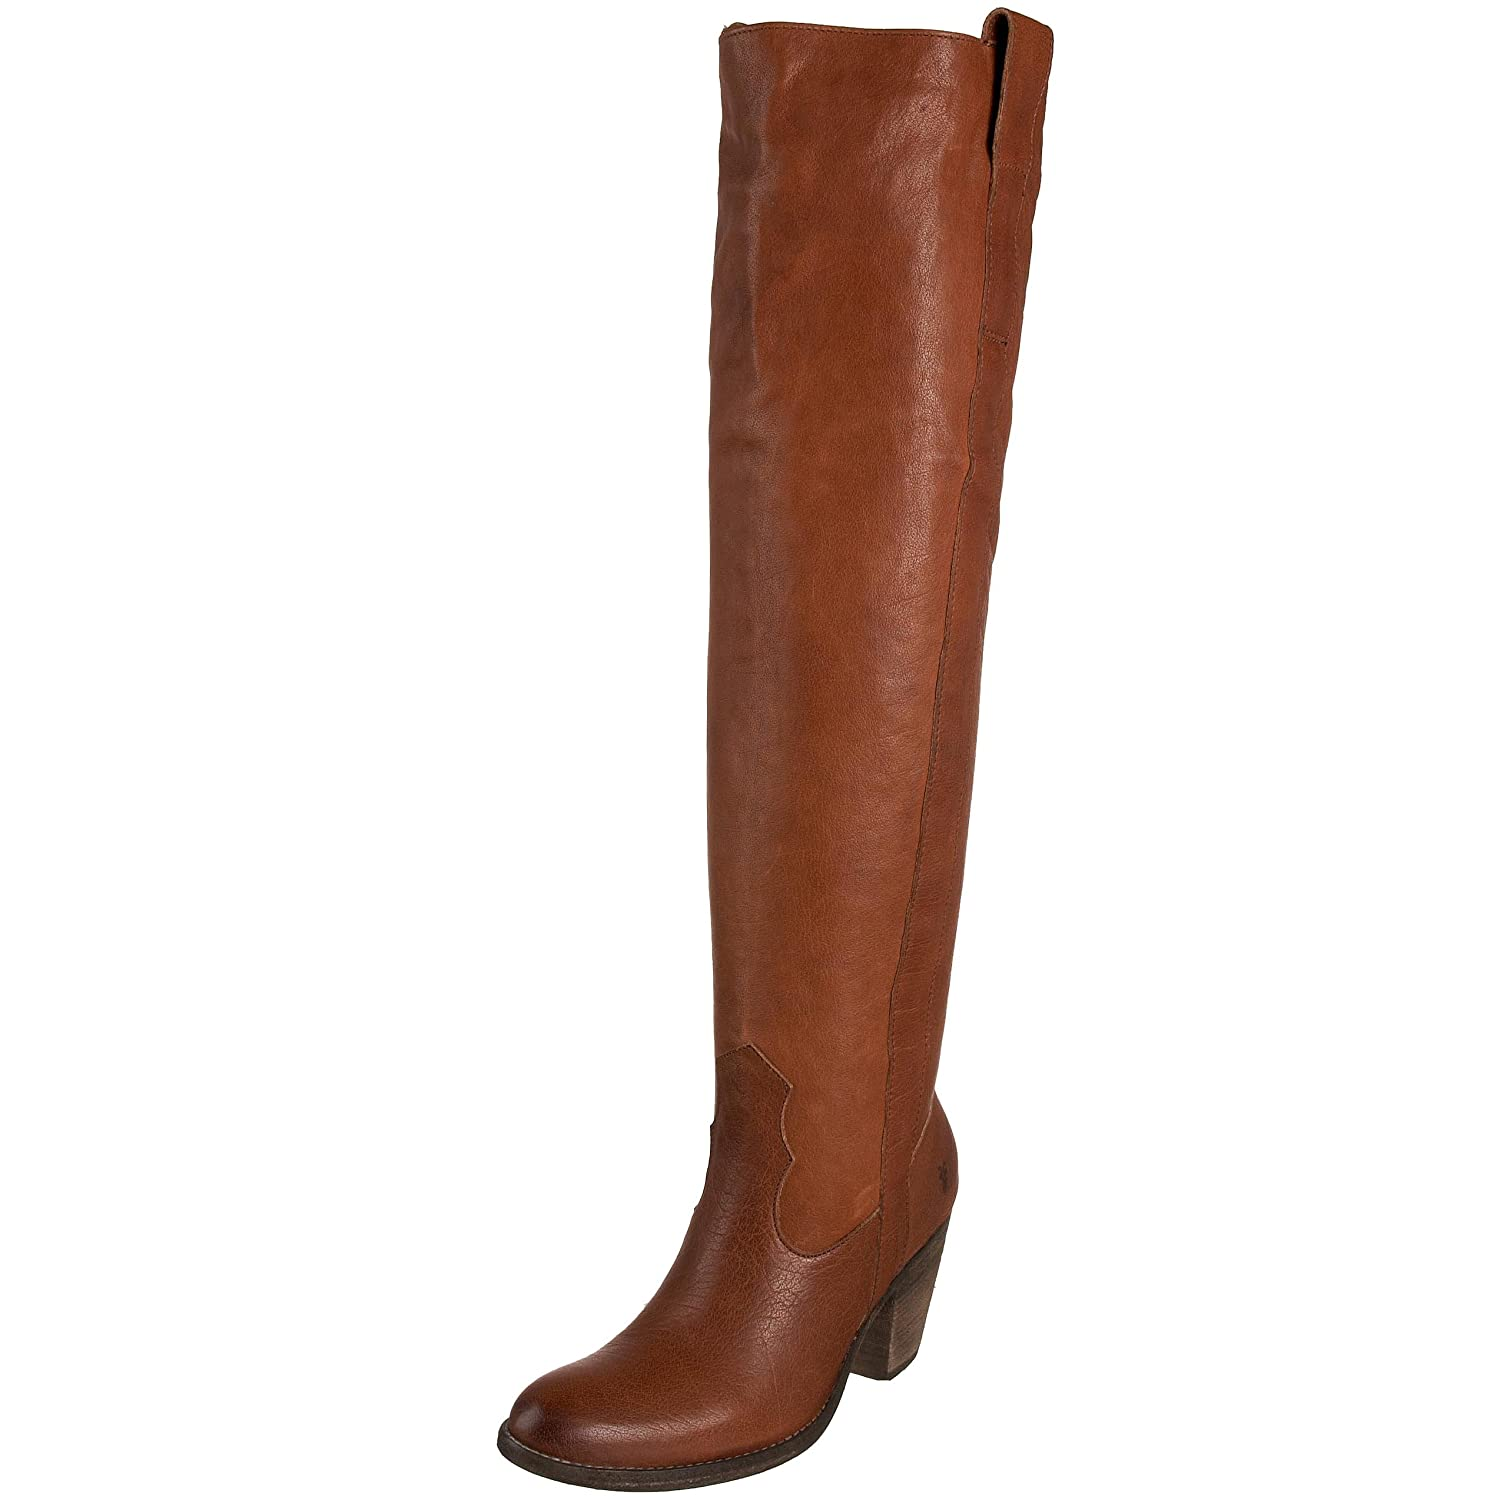 FRYE Taylor Over-The-Knee Boot from endless.com